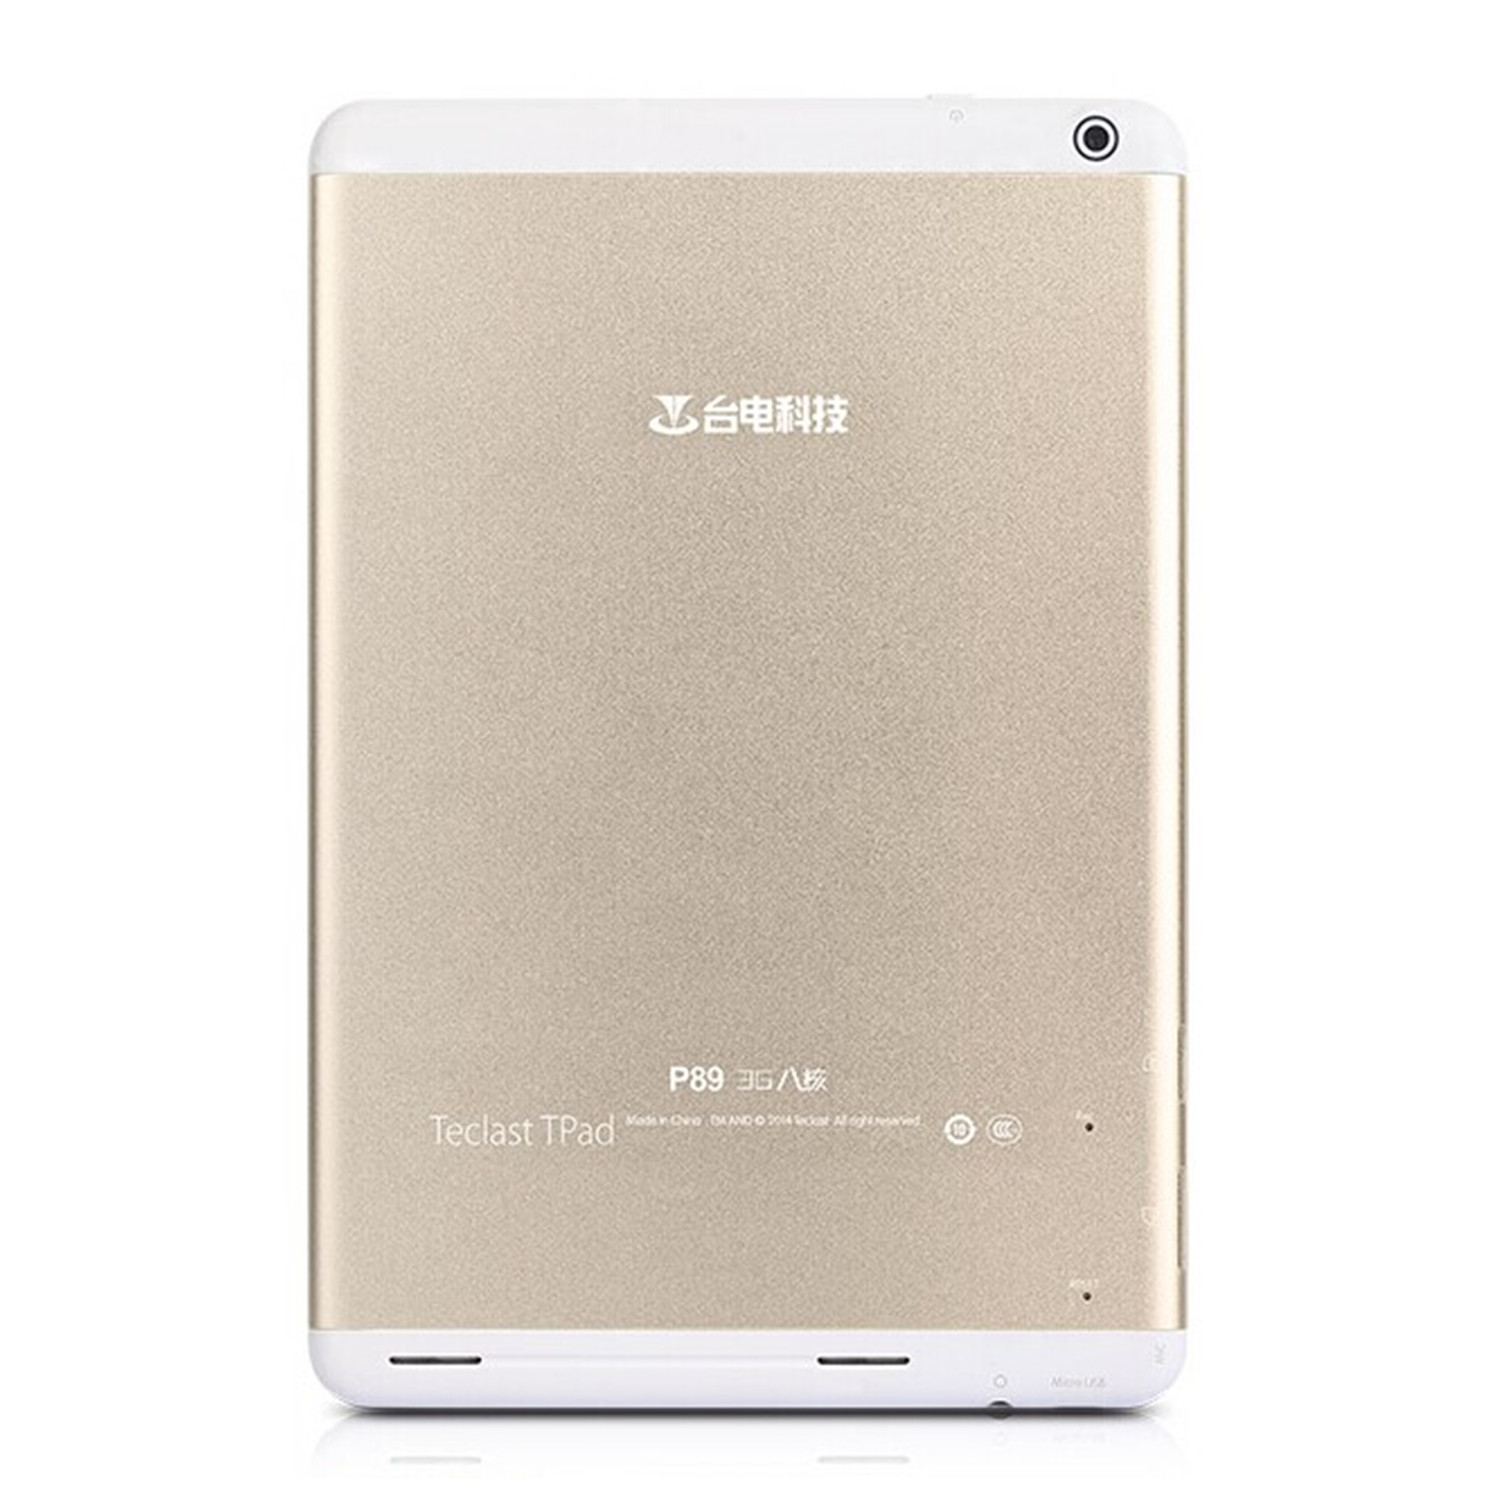 "Teclast P89 3G Tablet PC MTK8392 Octa Core 7.9"" Android 4.4 Retina Screen 16GB Golden"